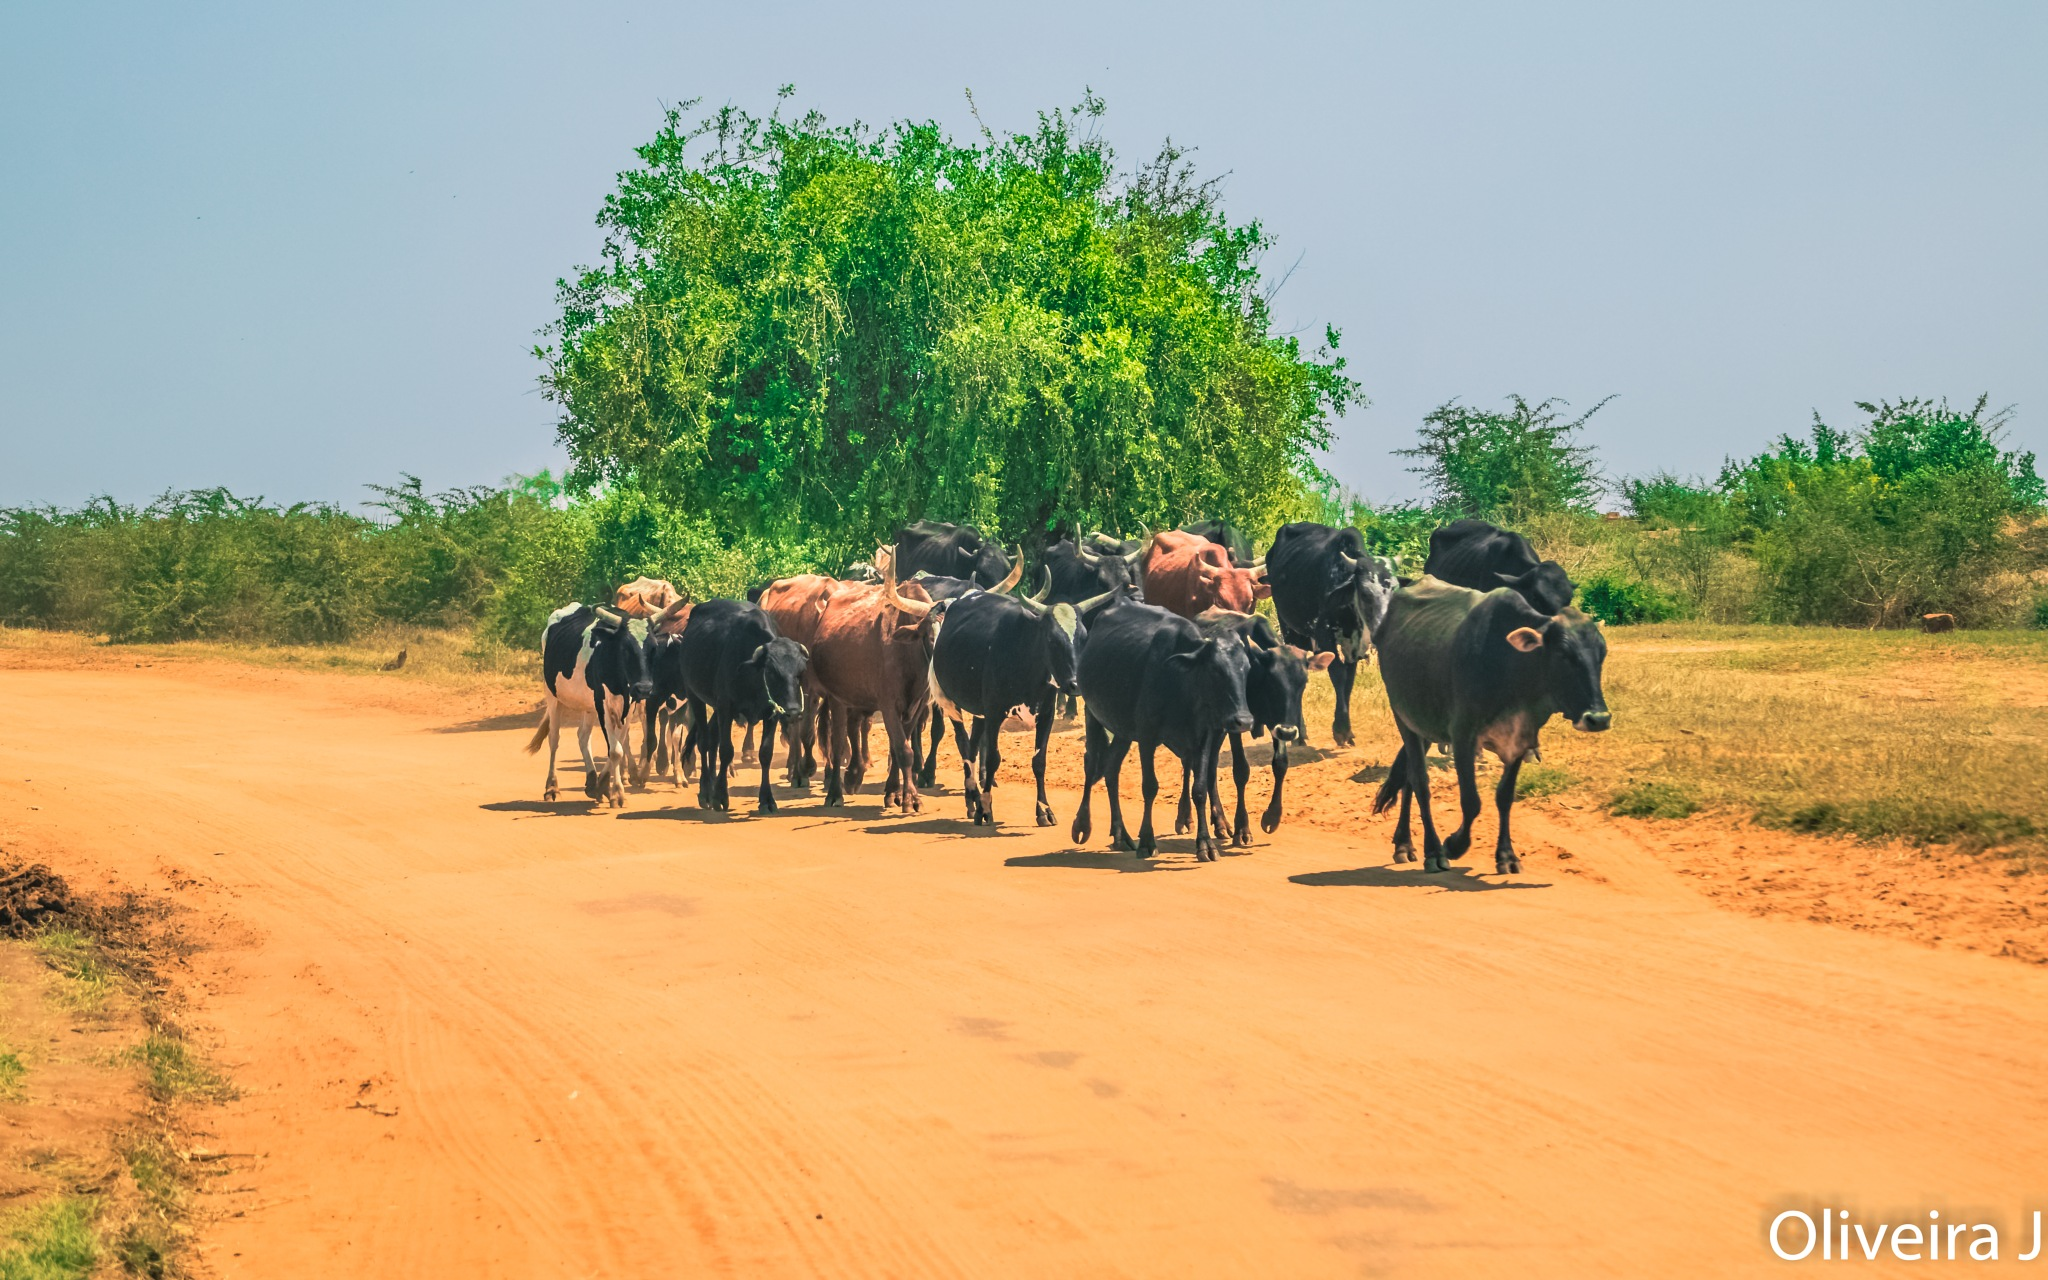 ON AN AFRICAN ROAD by joseoliveira1694